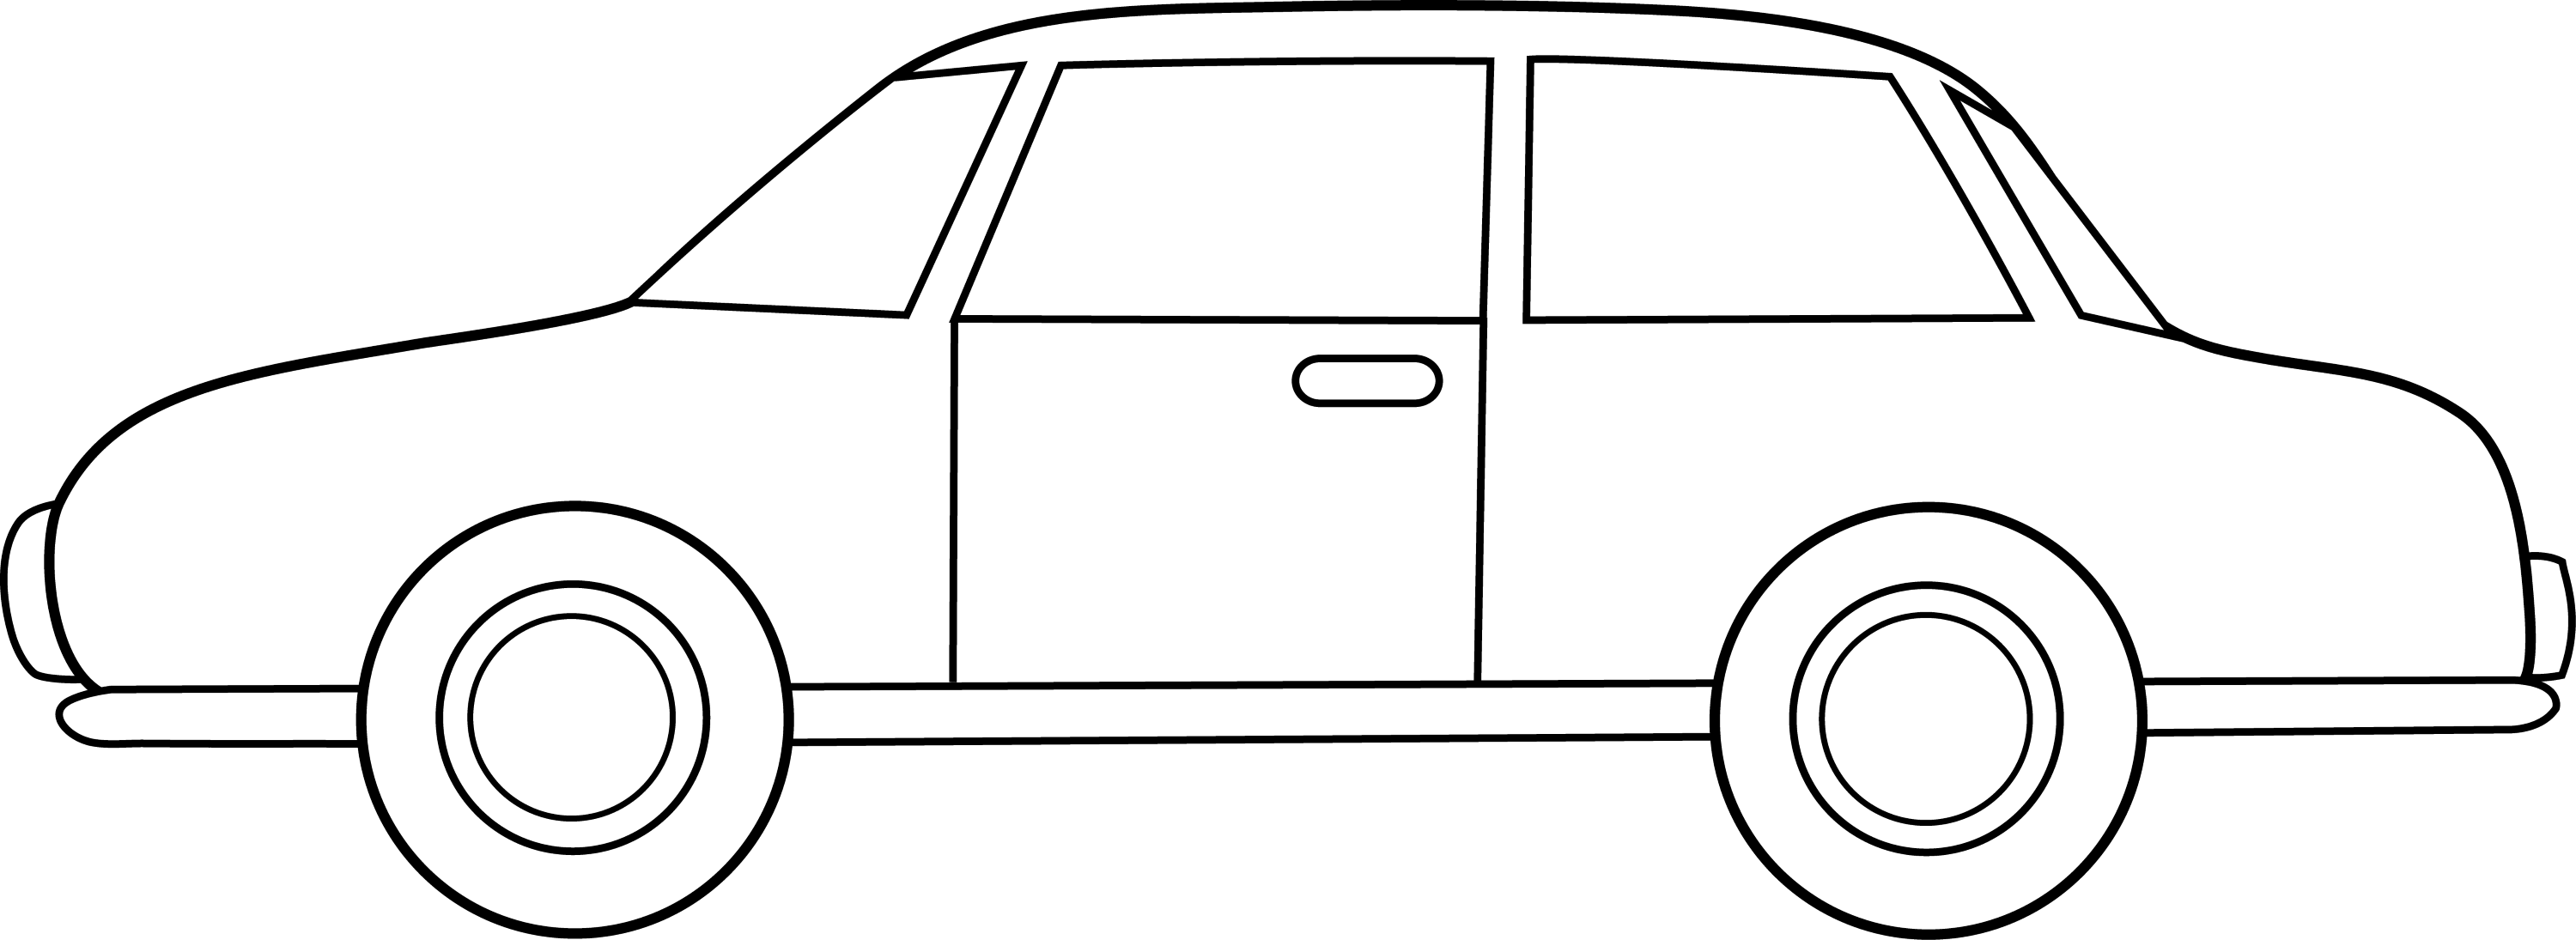 Line Drawing Car : Colorable car line art free clip